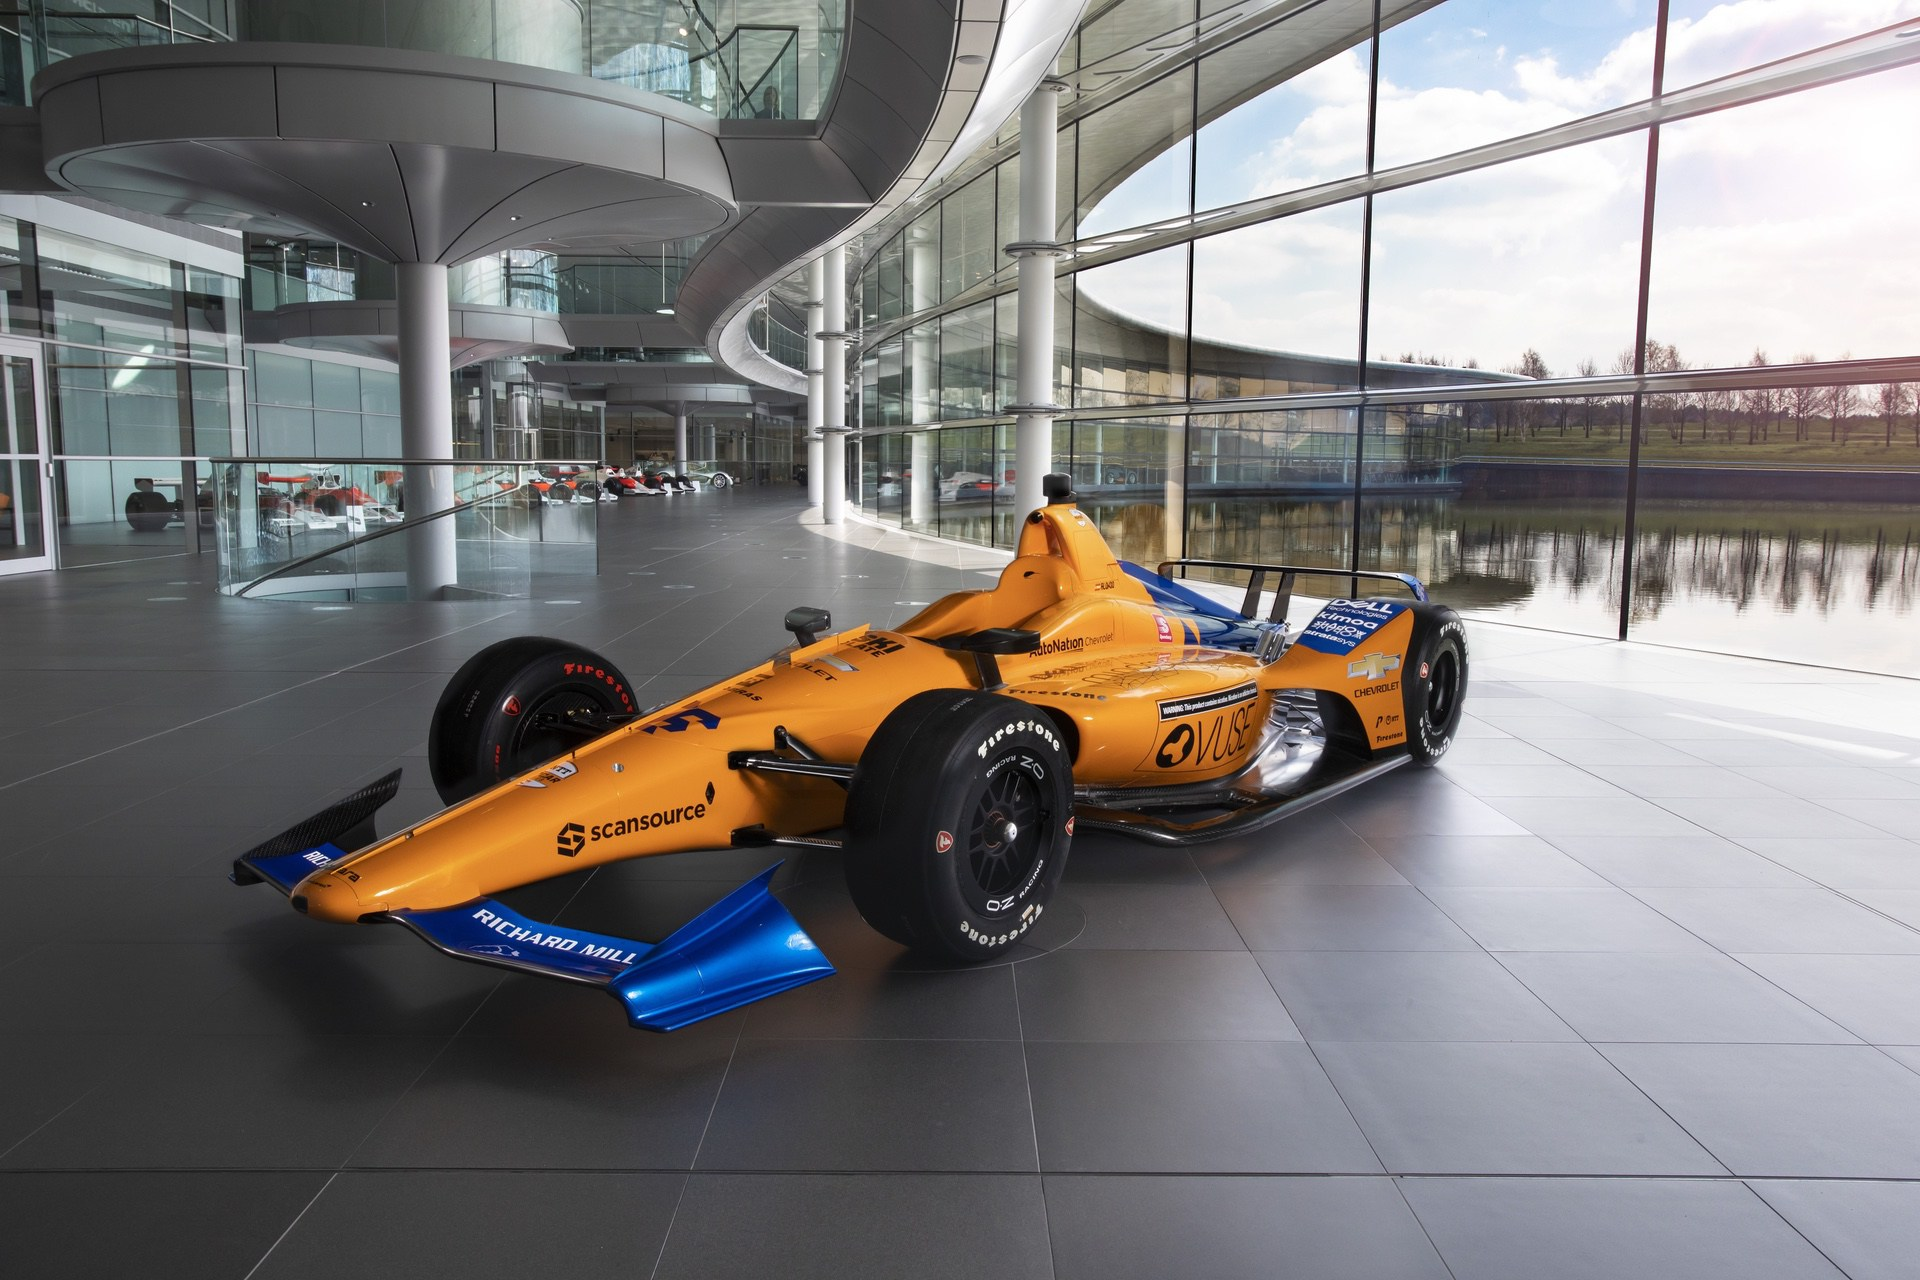 McLaren Indy500 car 2019 on the boulevard at McLaren Technology Centre